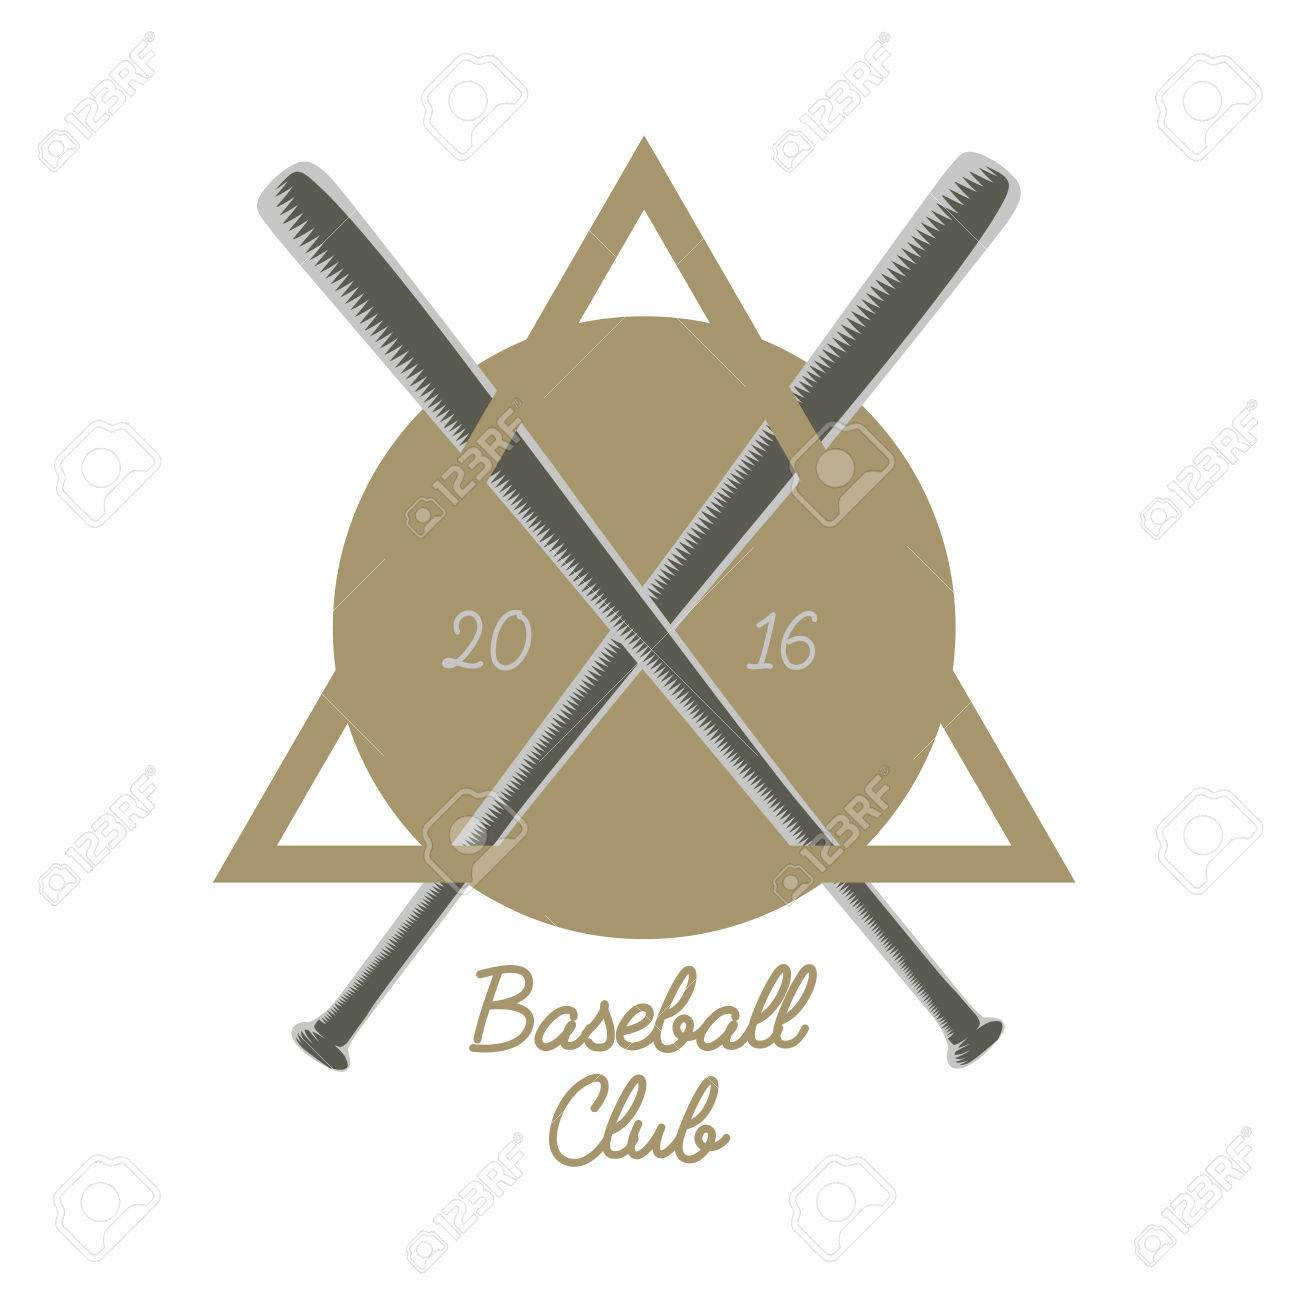 Vintage Baseball Club Logo Emblem Badge Or Design Element With